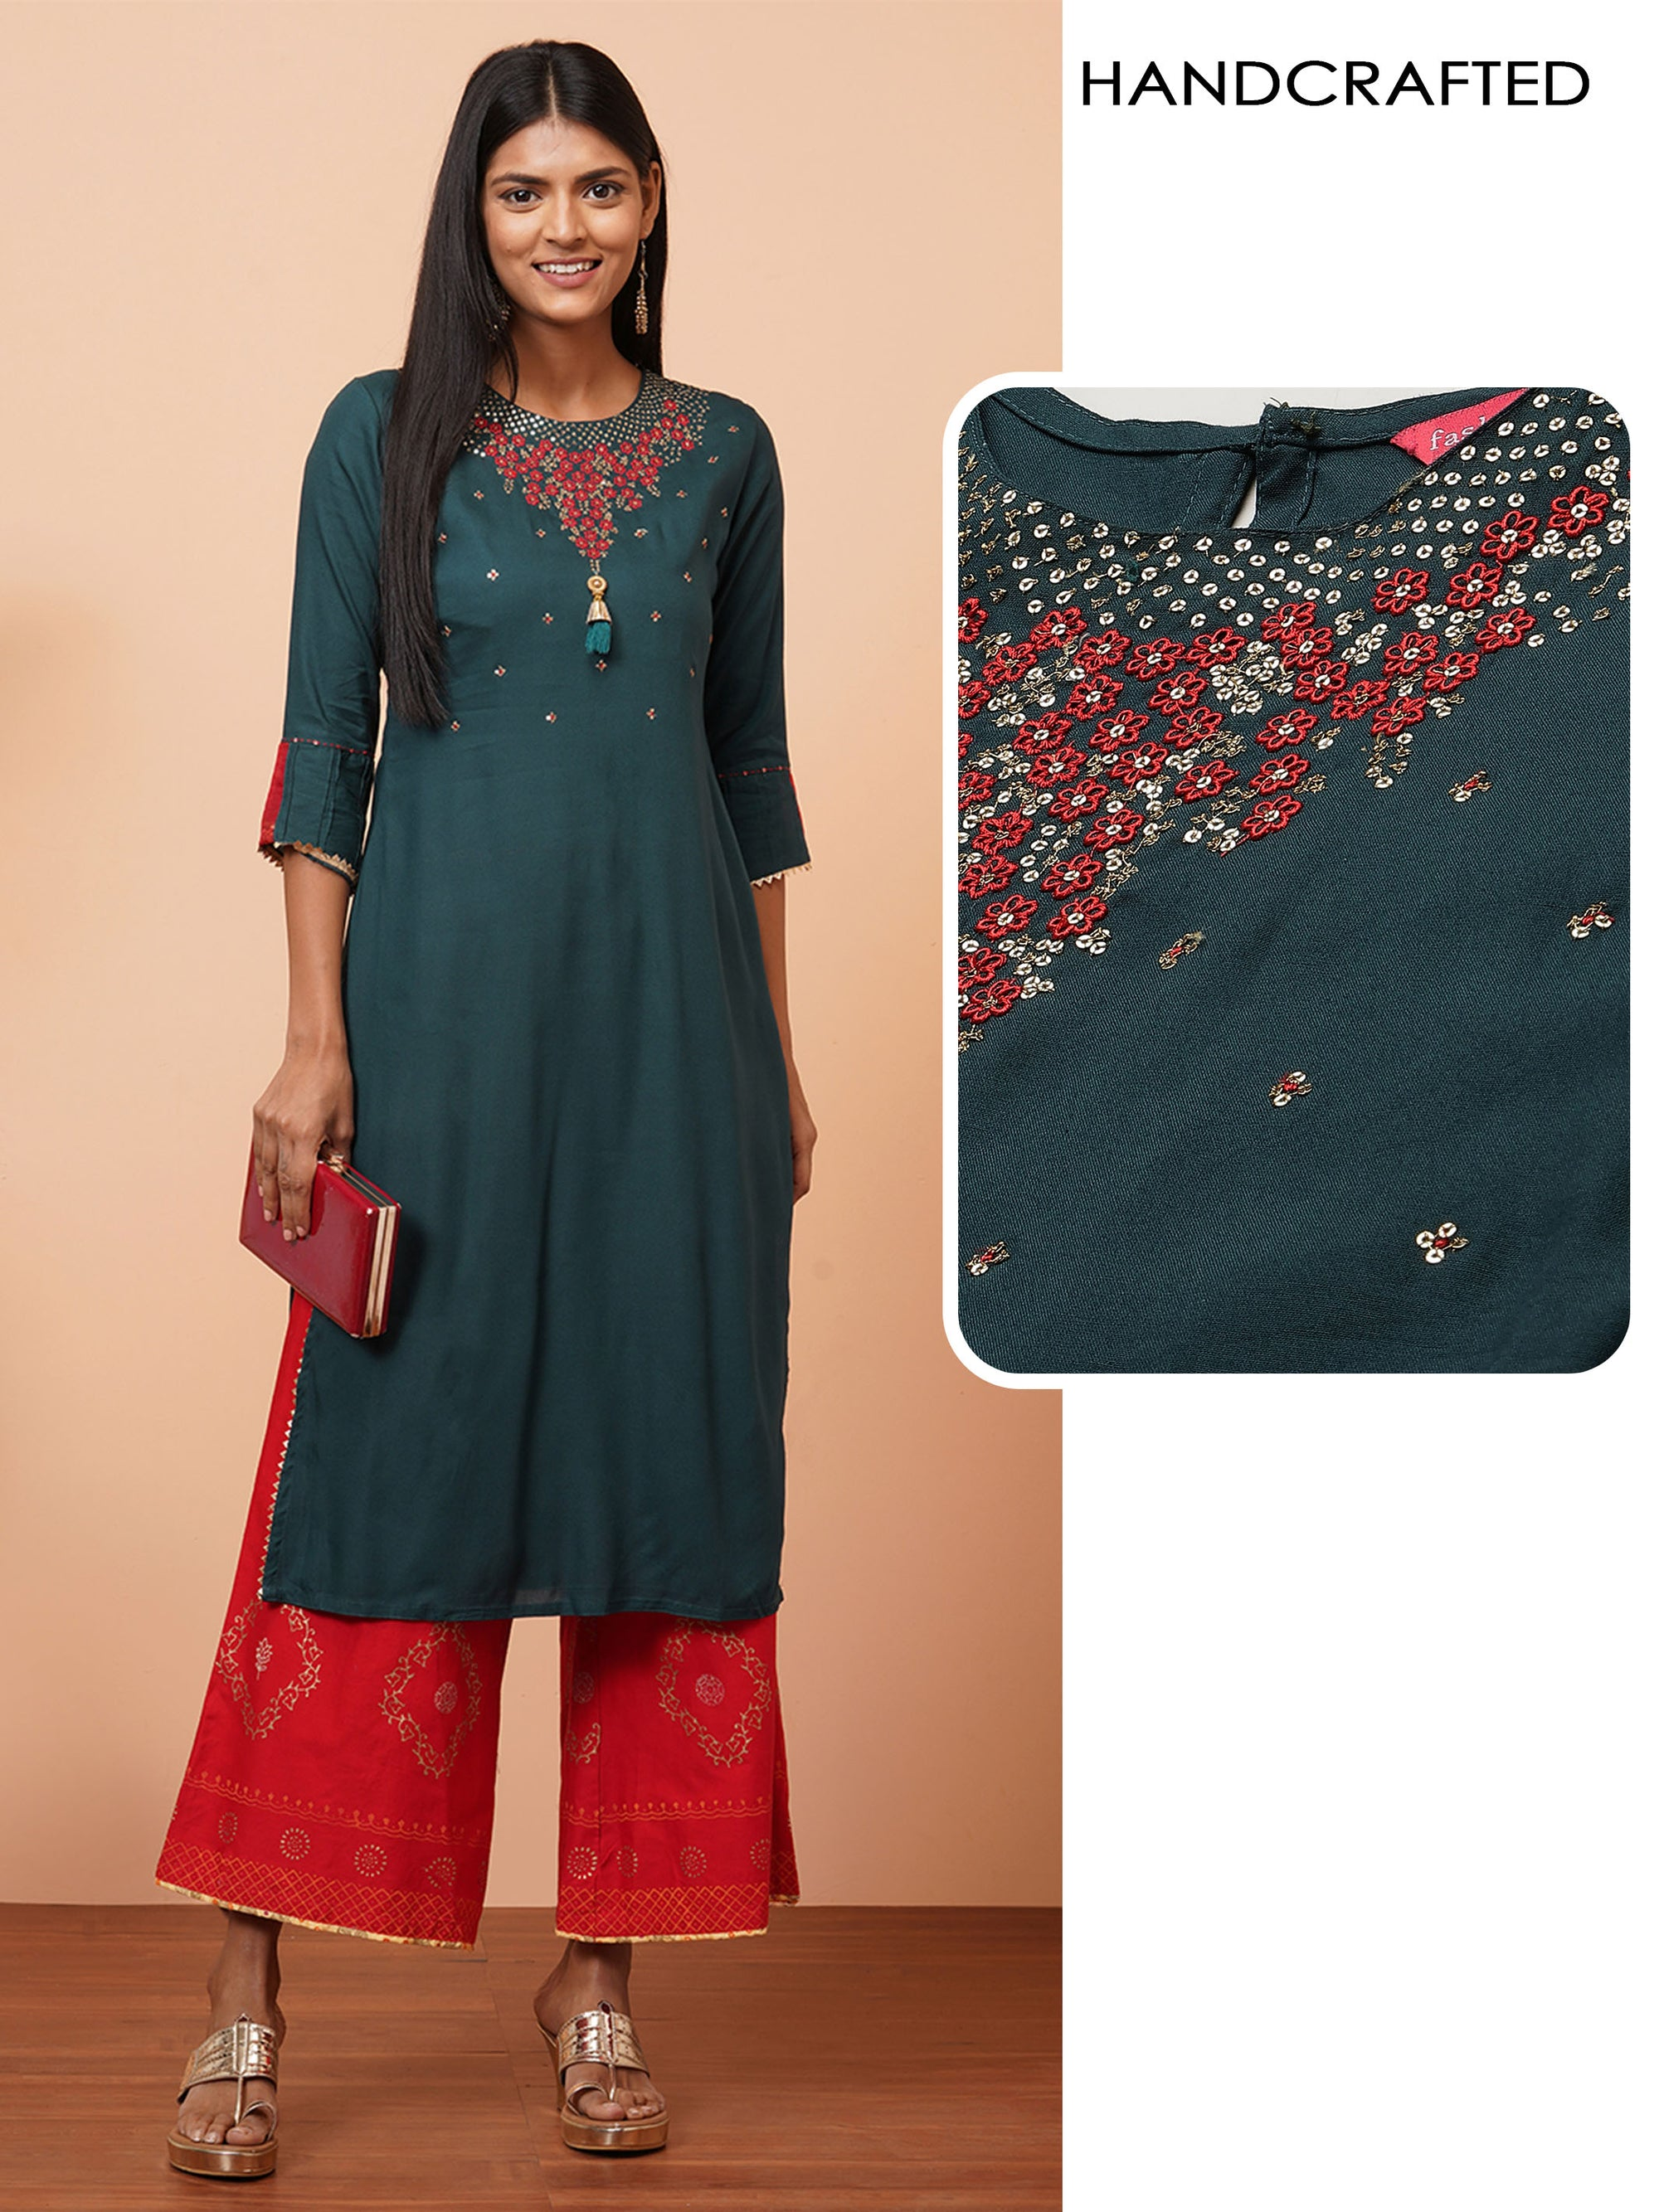 Floral Hand Embroidered Yoke Festive Kurta - Teal Green